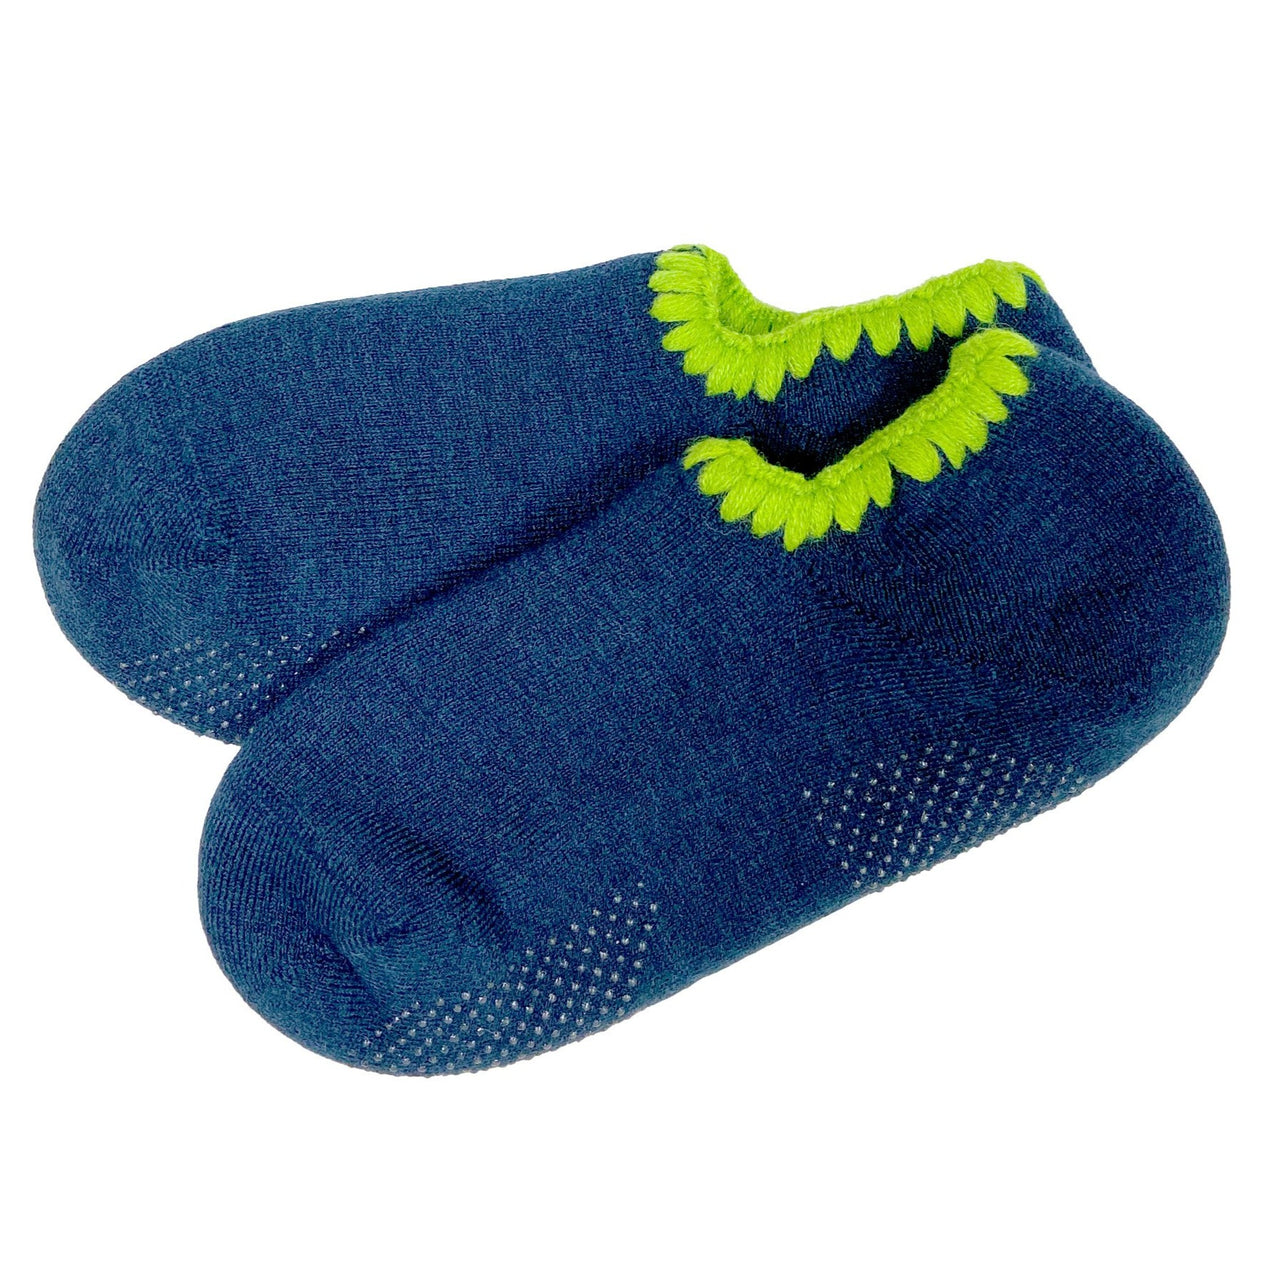 CHERRYSTONE® Slipper Socks | Seattle Limited Edition with Grips | Midnight Blue - CHERRYSTONE